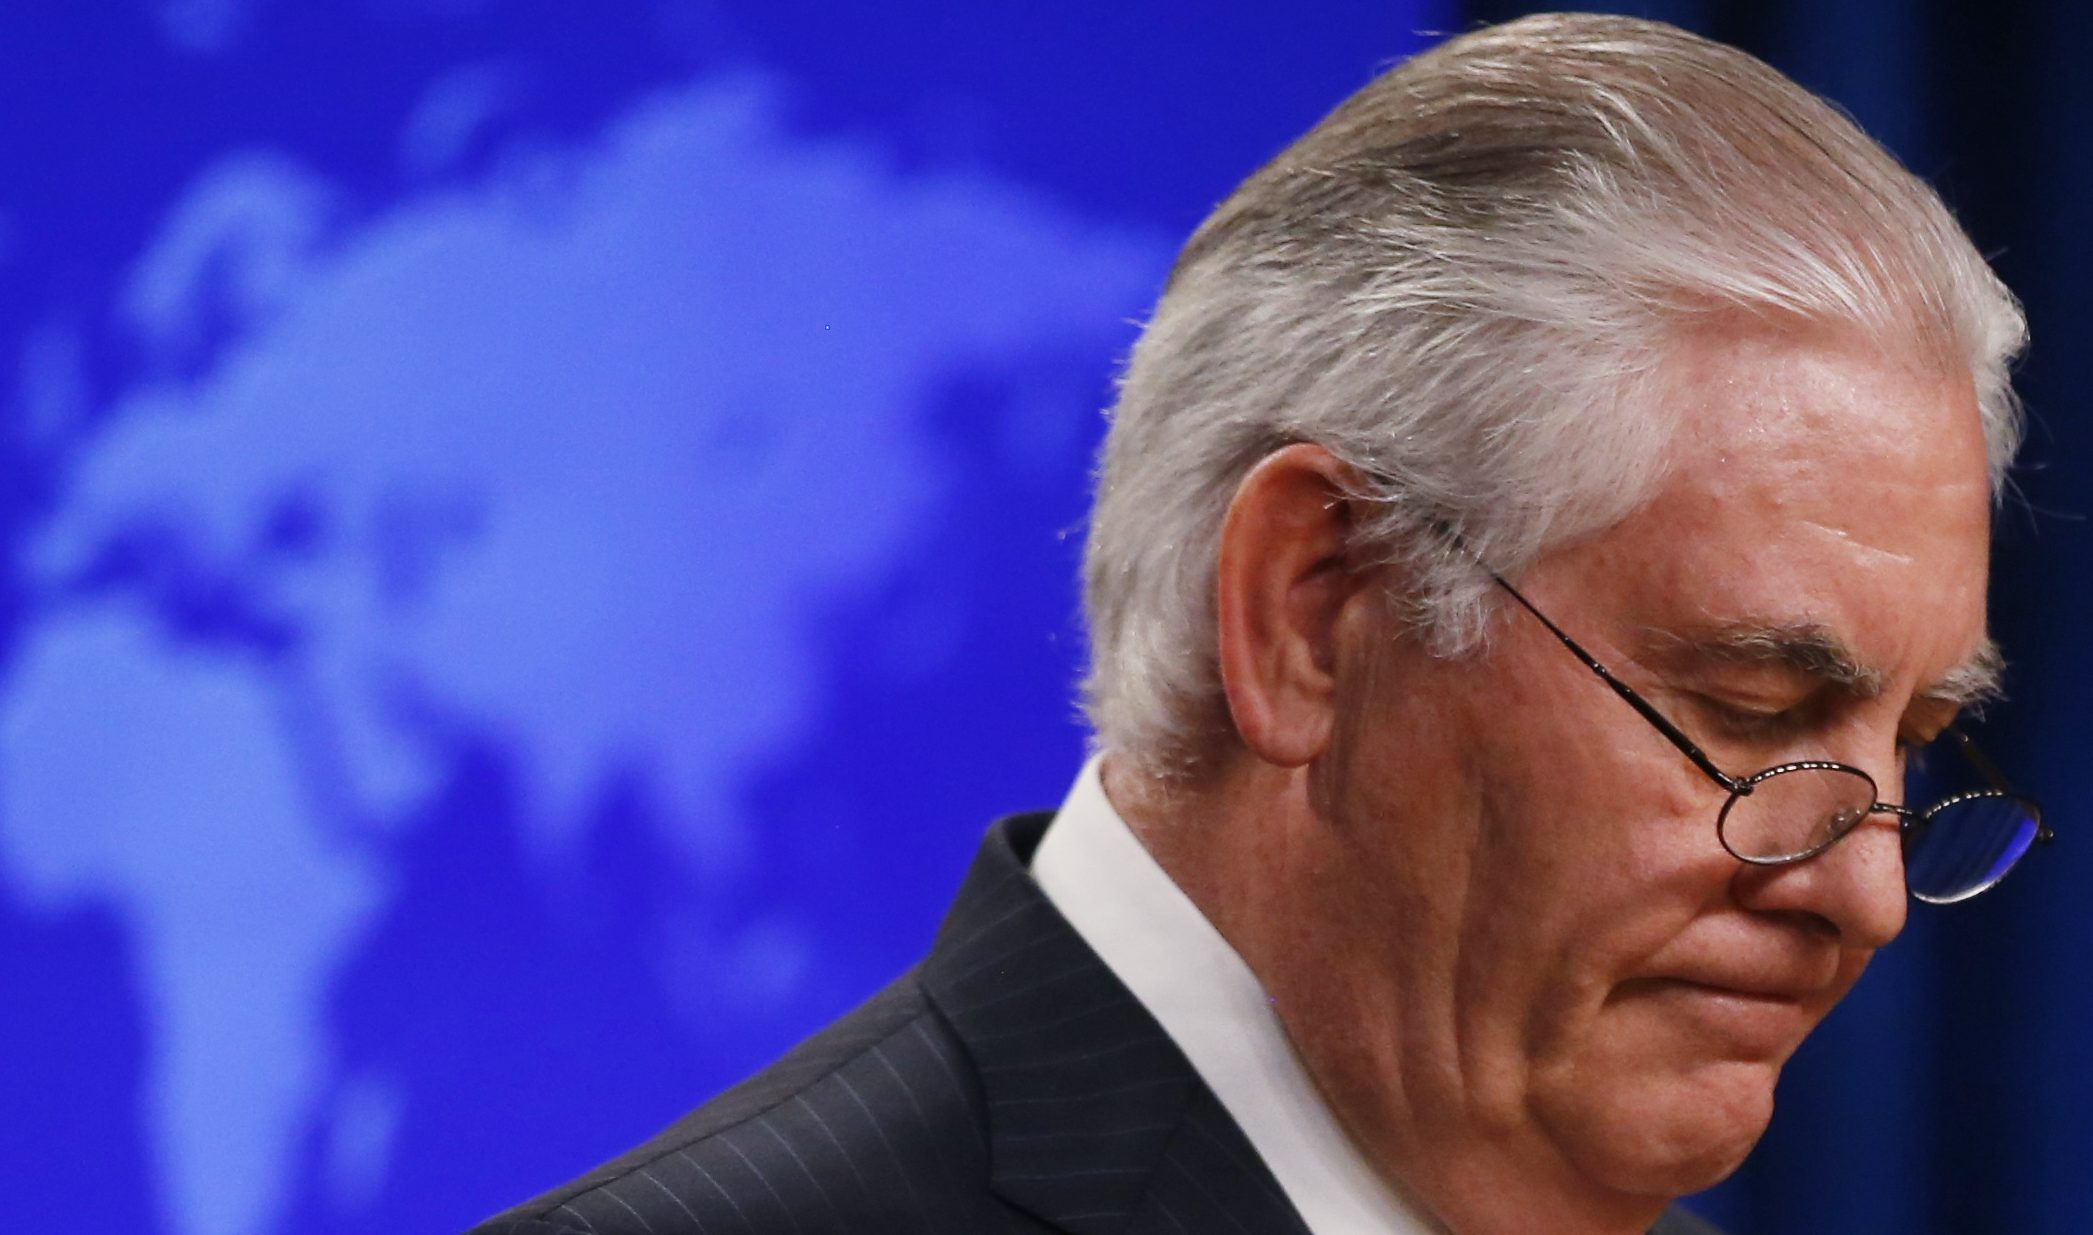 U.S. Secretary of State Rex Tillerson speaks to the media at the U.S. State Department after being fired by President Donald Trump in Washington, U.S., March 13, 2018. REUTERS/Leah Millis - HP1EE3D1FRW4M